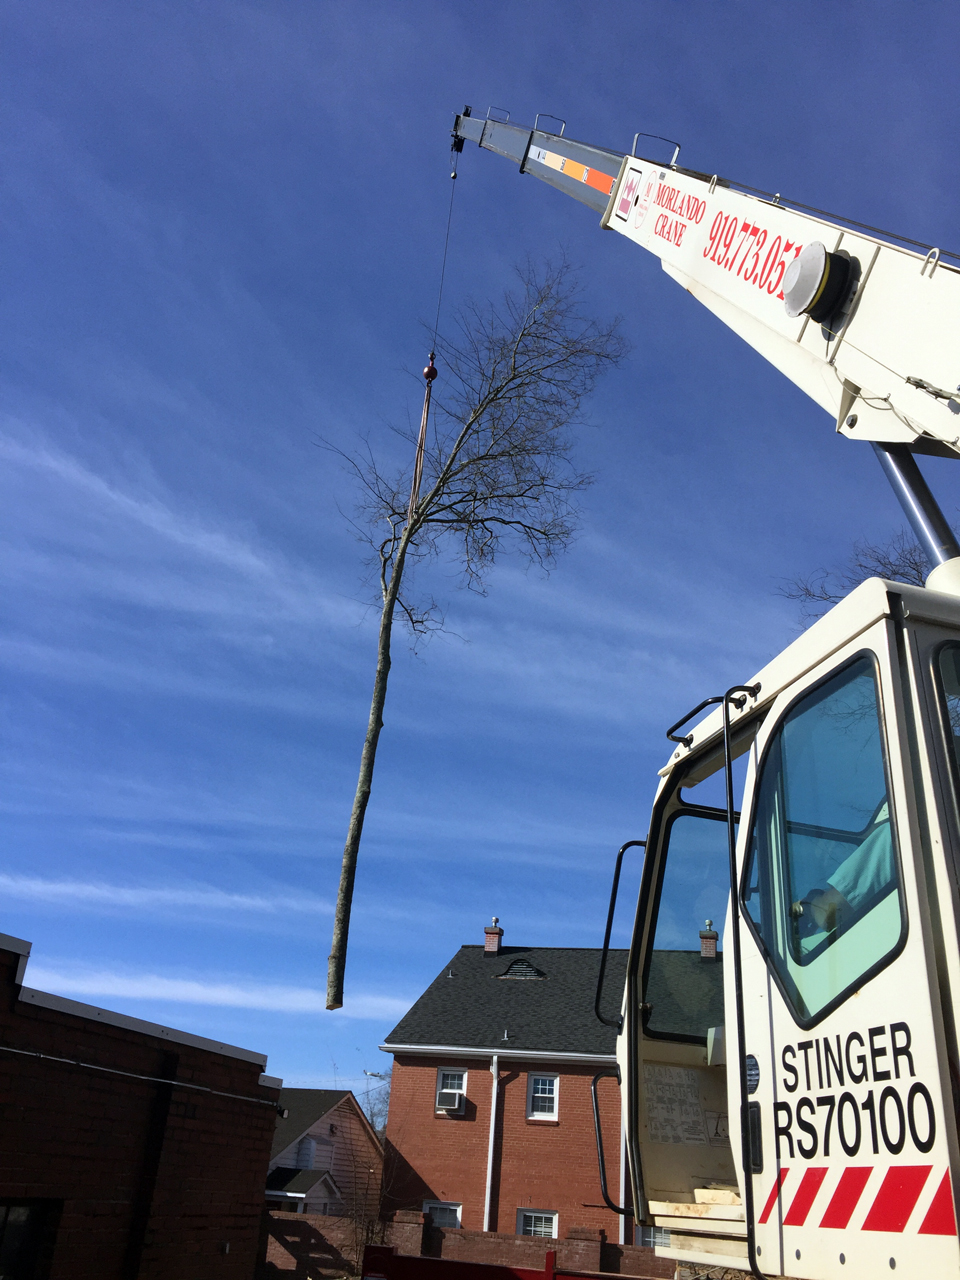 Tree Removal Services in Pittsboro using the Big Crane